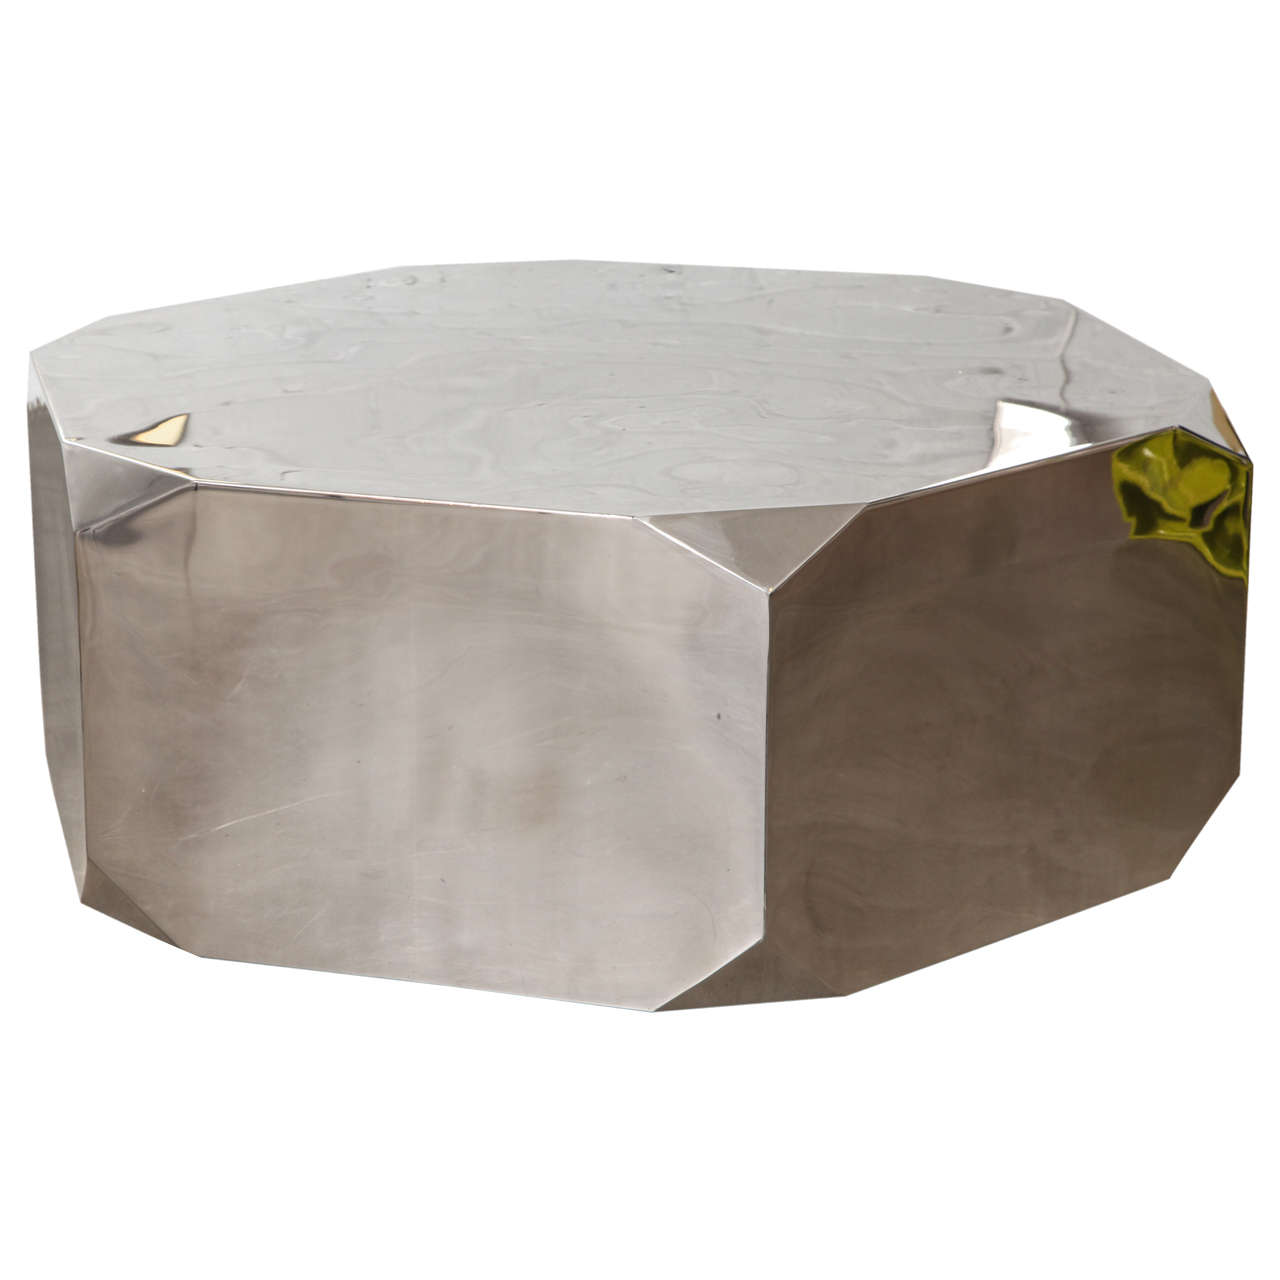 Bobby Boulon Coffee Table by Maurice Marty For Sale at 1stdibs